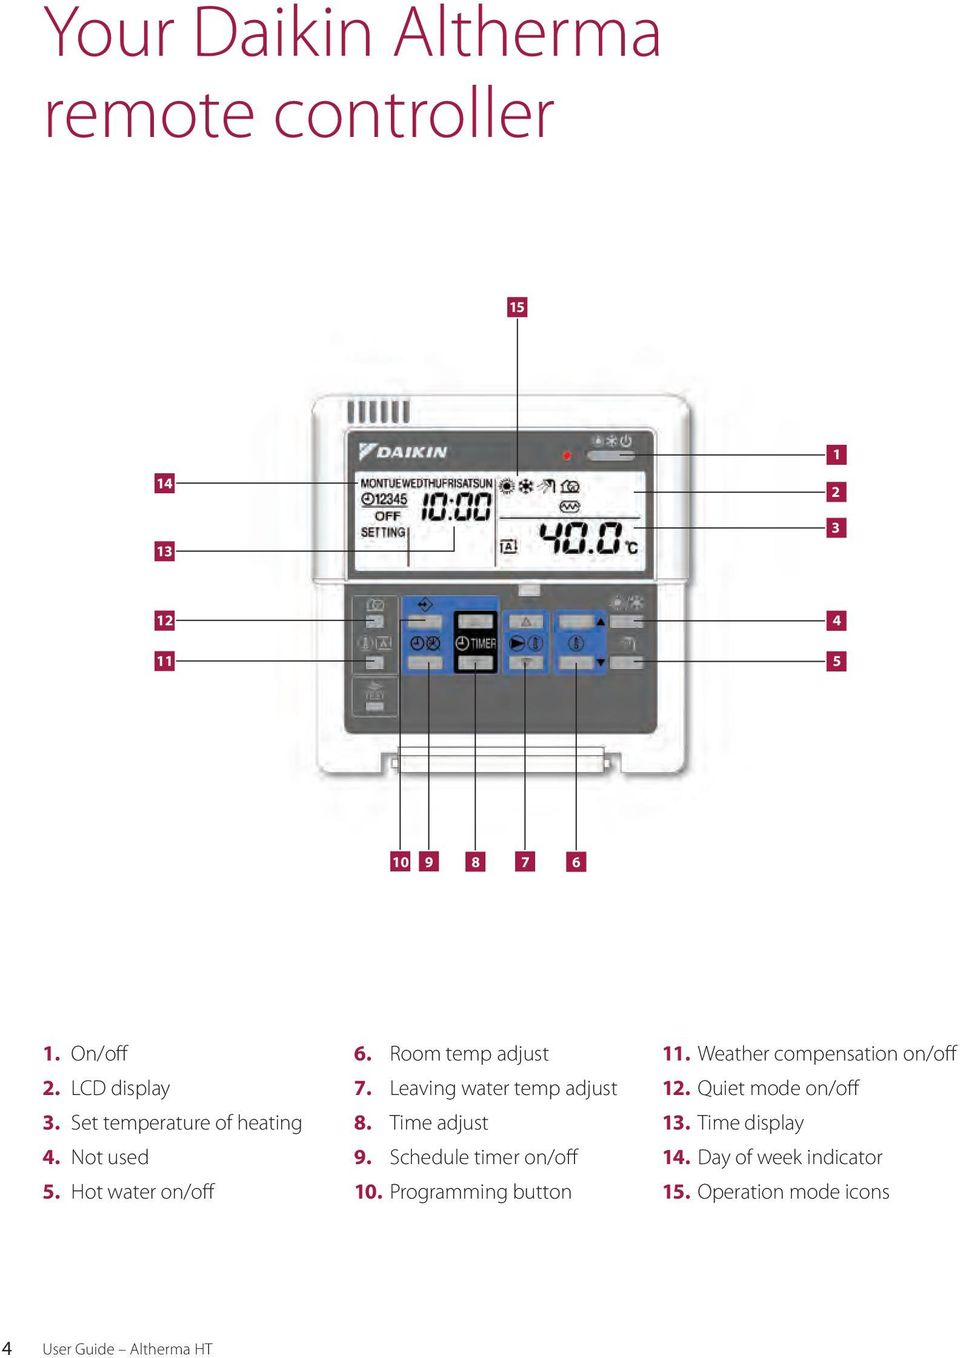 Quiet mode on/off 3. Set temperature of heating 8. Time adjust 13. Time display 4. Not used 9.